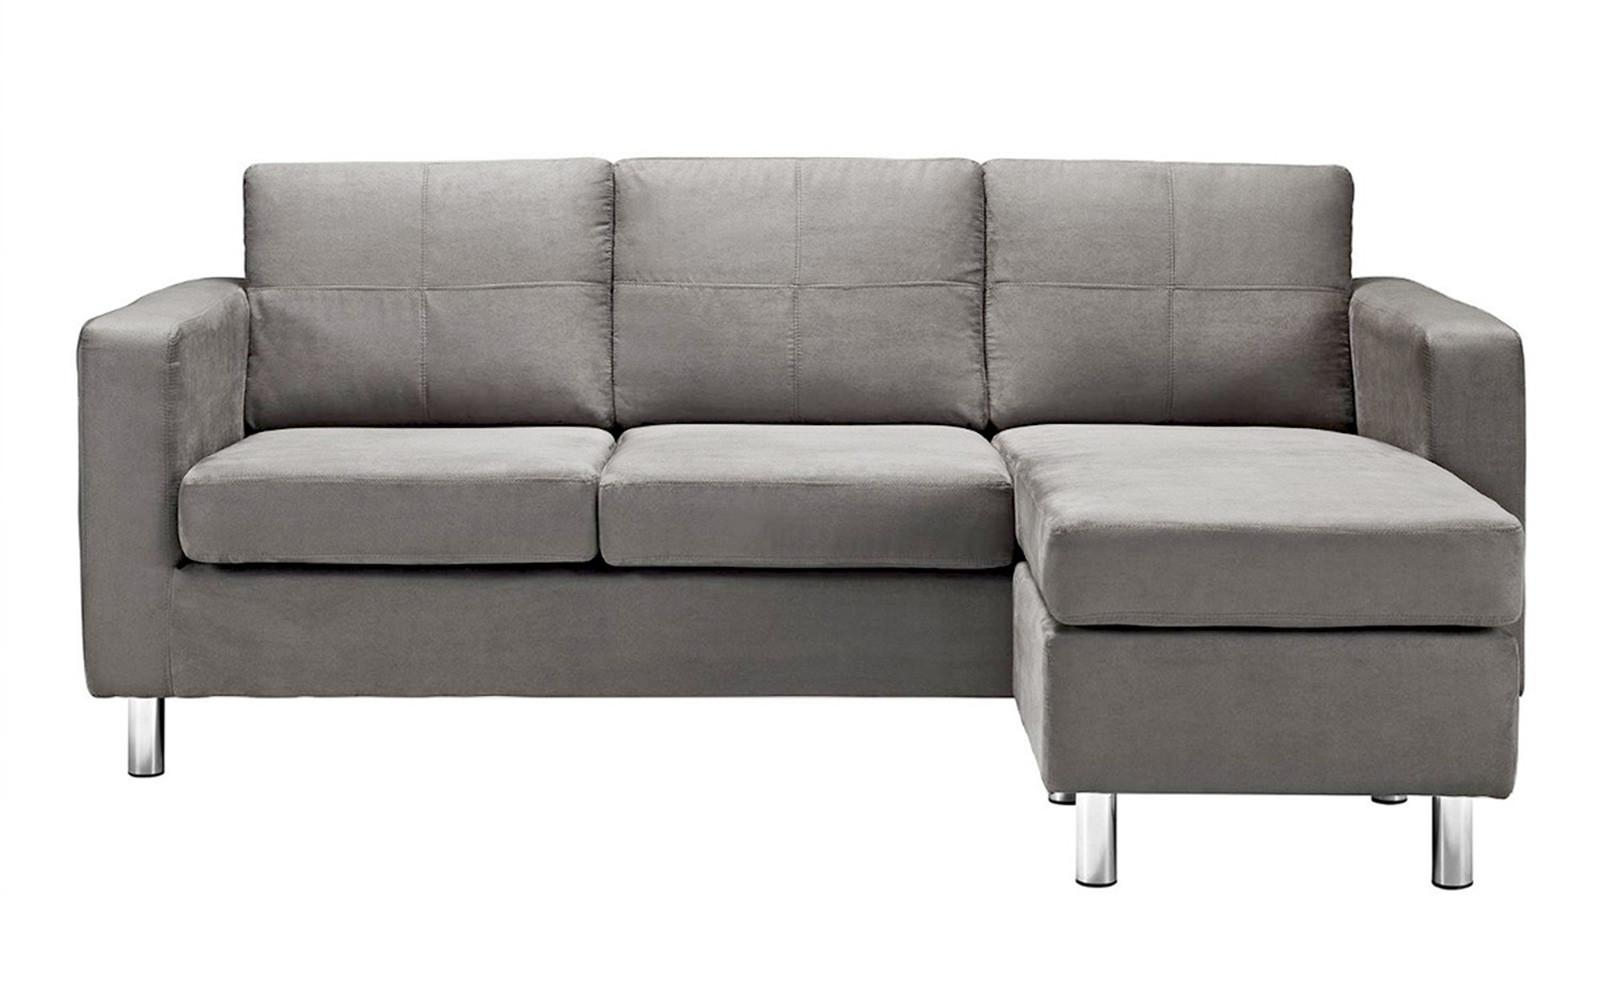 Modern Reversible Small Space Configurable Microfiber Sectional Intended For Modern Sectional Sofas For Small Spaces (View 3 of 20)